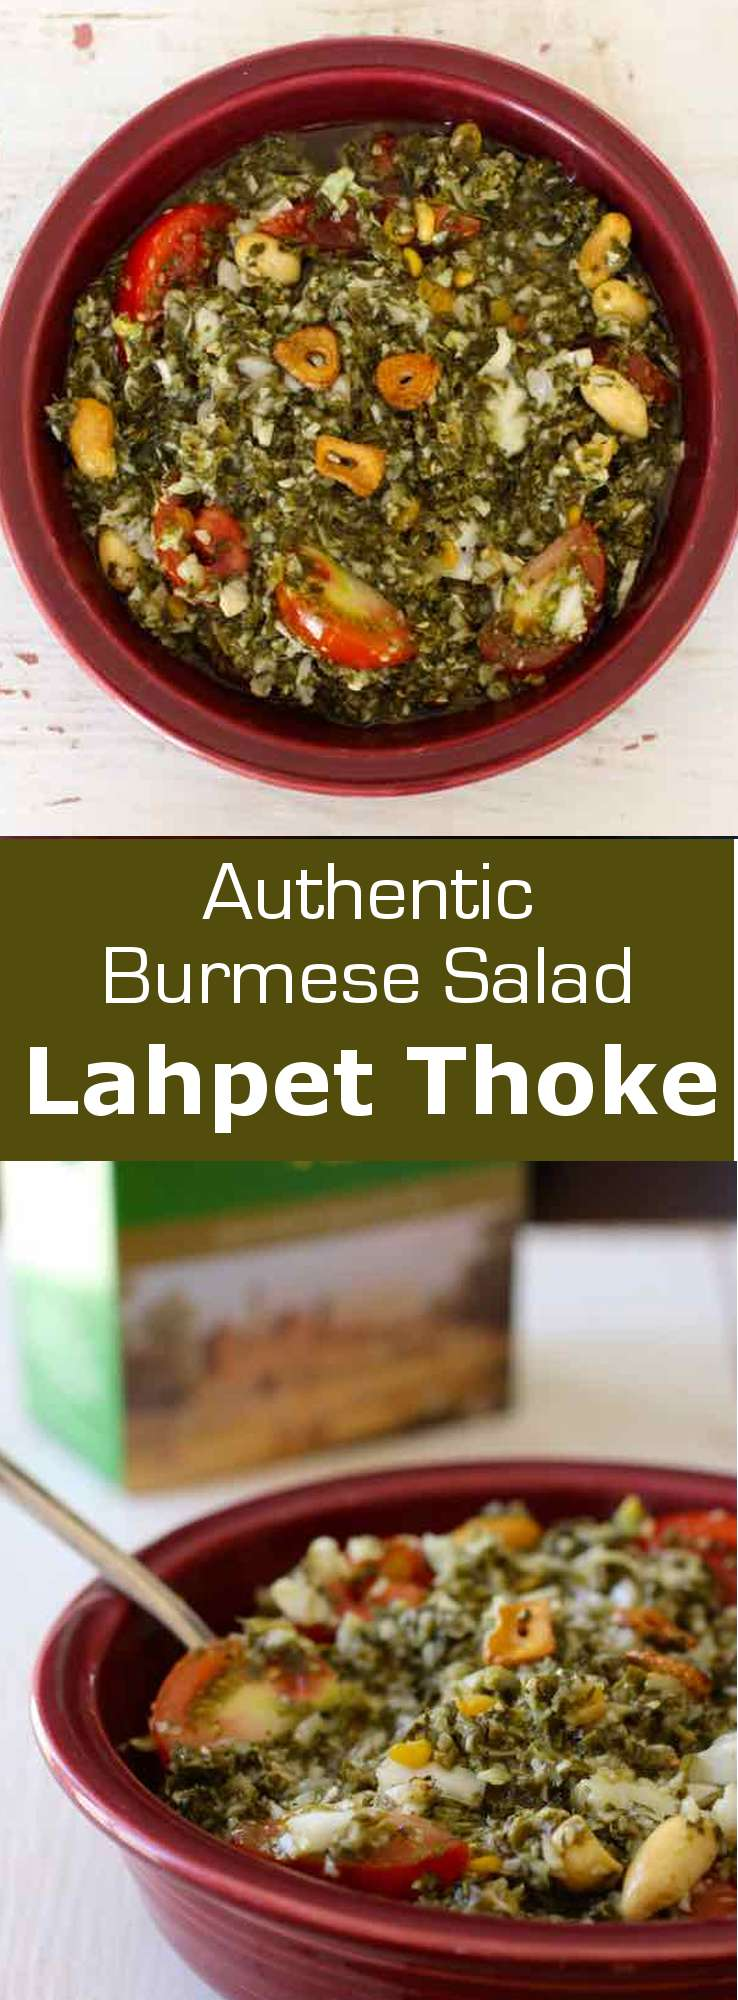 Lahpet thoke is a delicious traditional Burmese salad prepared with fermented tea leaves that features a unique earthy and tangy flavor. #Myanmar #Burma #BurmeseCuisine #Salad #WorldCuisine #196flavors